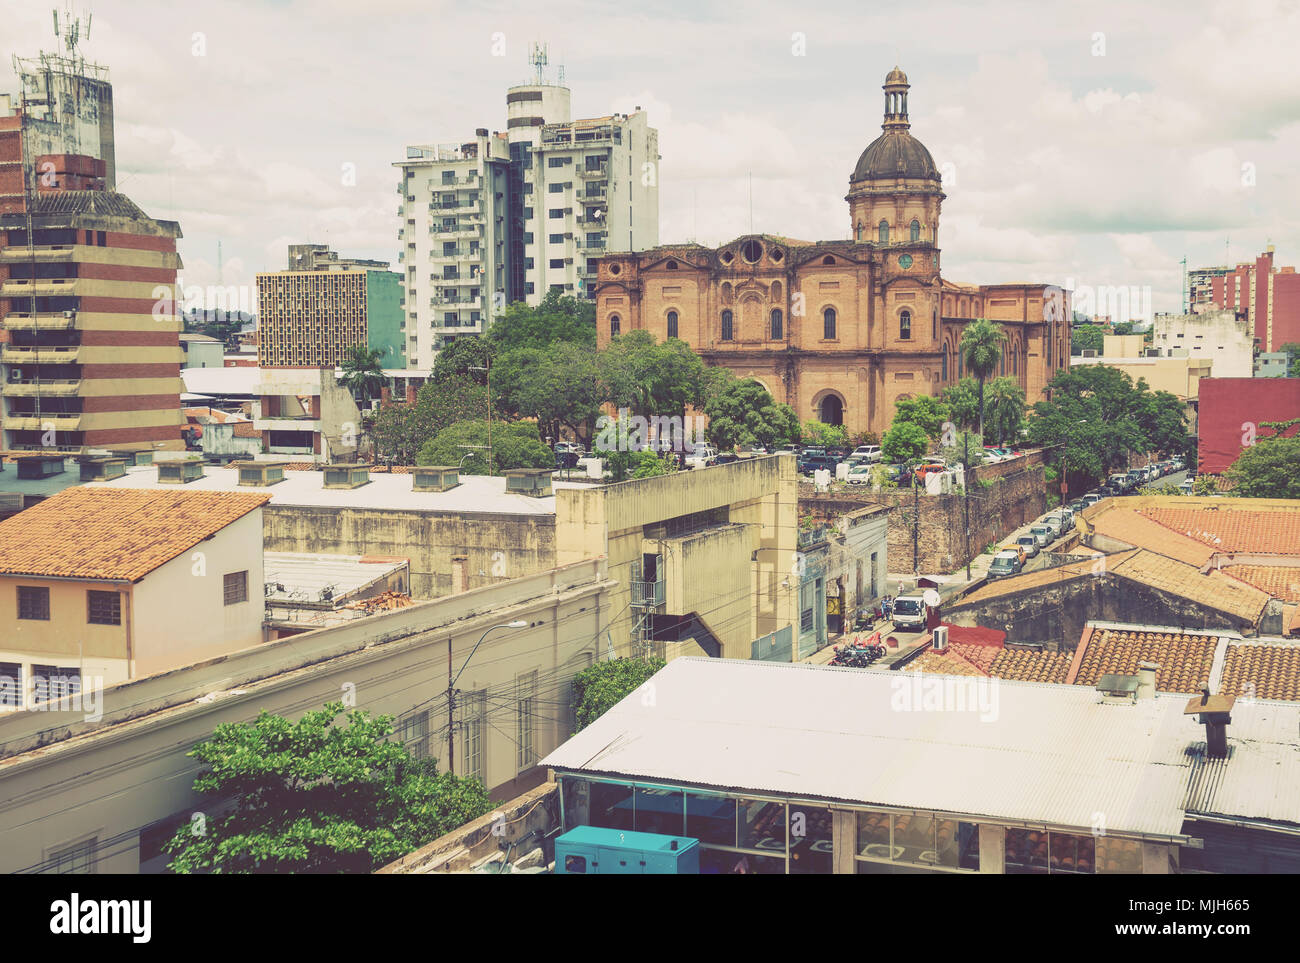 Paraguay, the capital. Asuncion: sights and photos 30